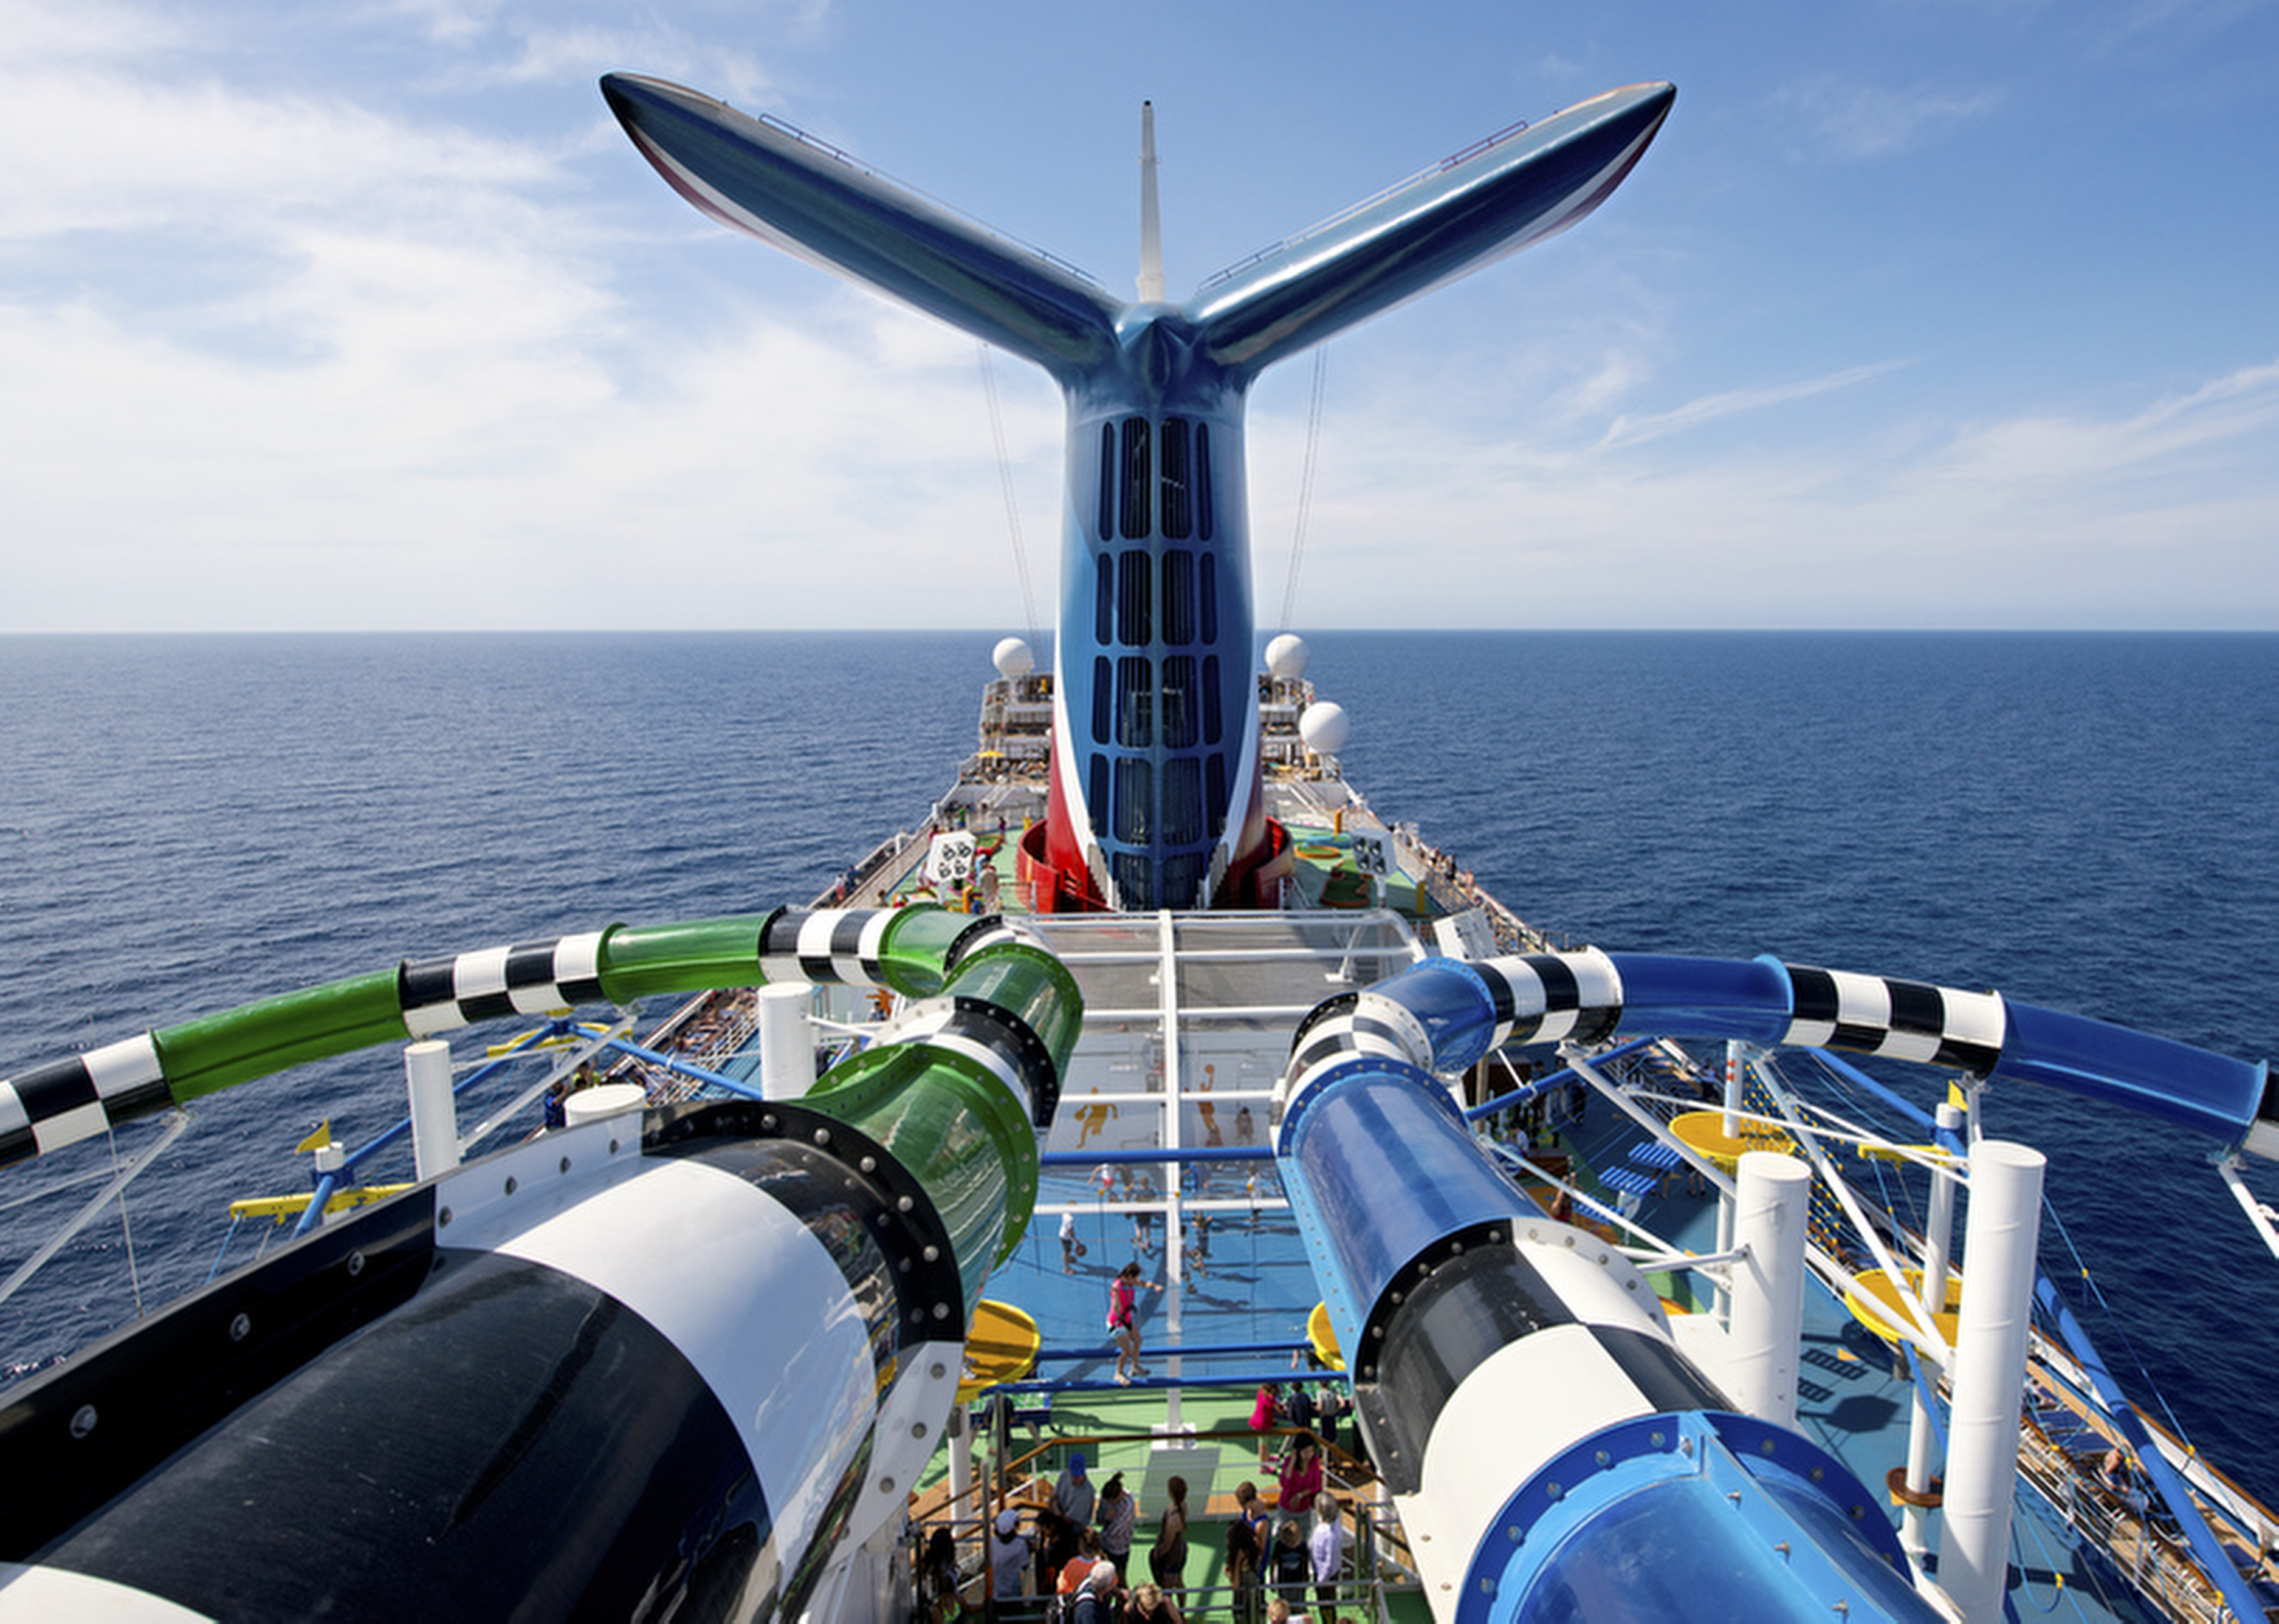 Carnival Cruise Line Named Best Ocean Cruise Line by USA Today 10Best Readers' Choice Awards